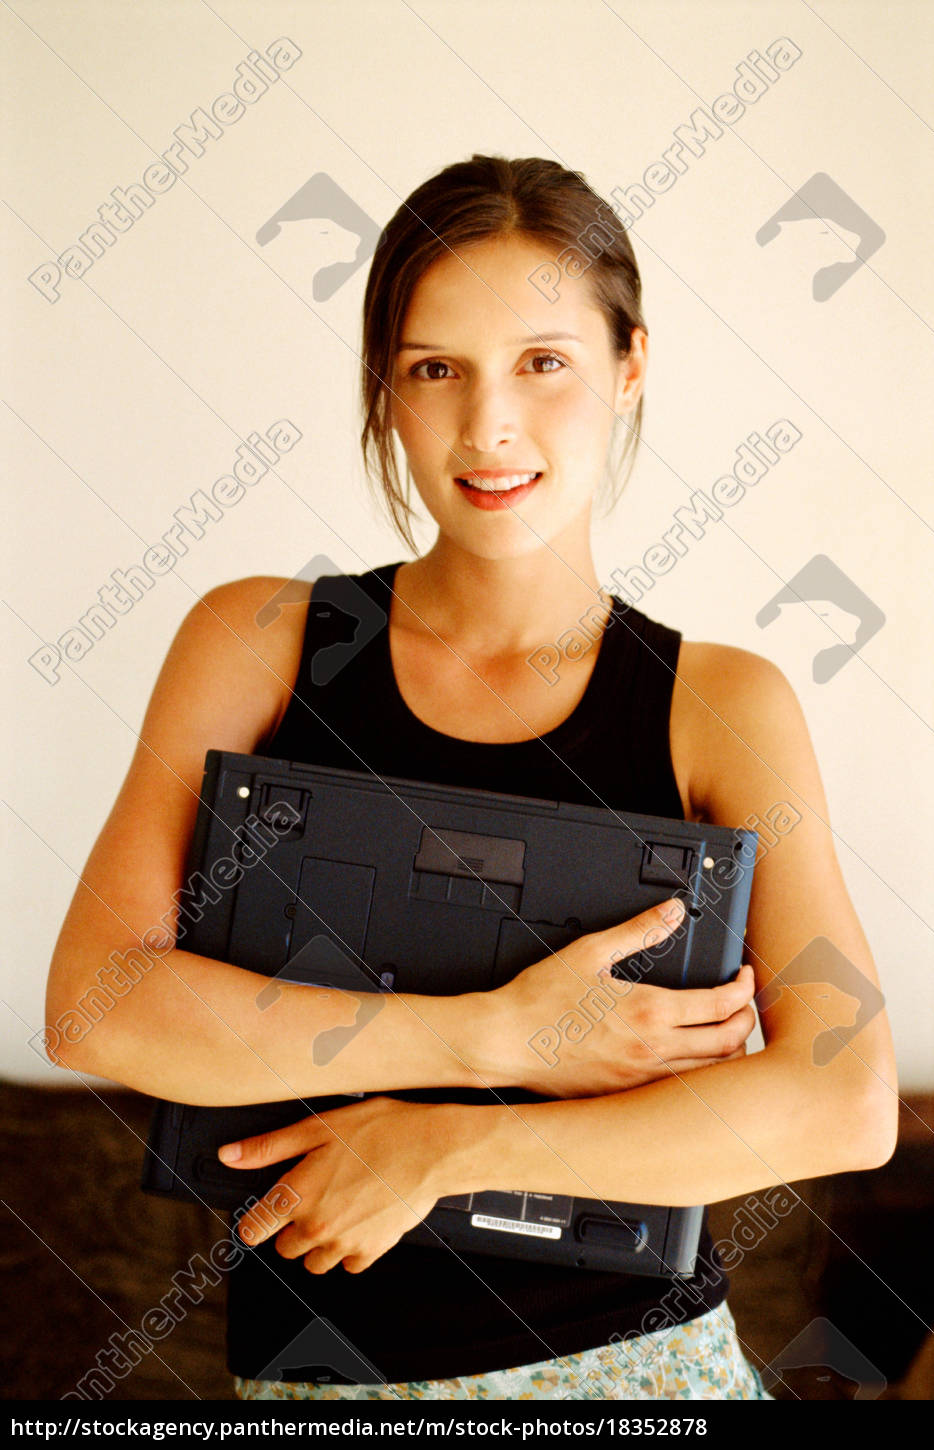 woman, holding, laptop - 18352878